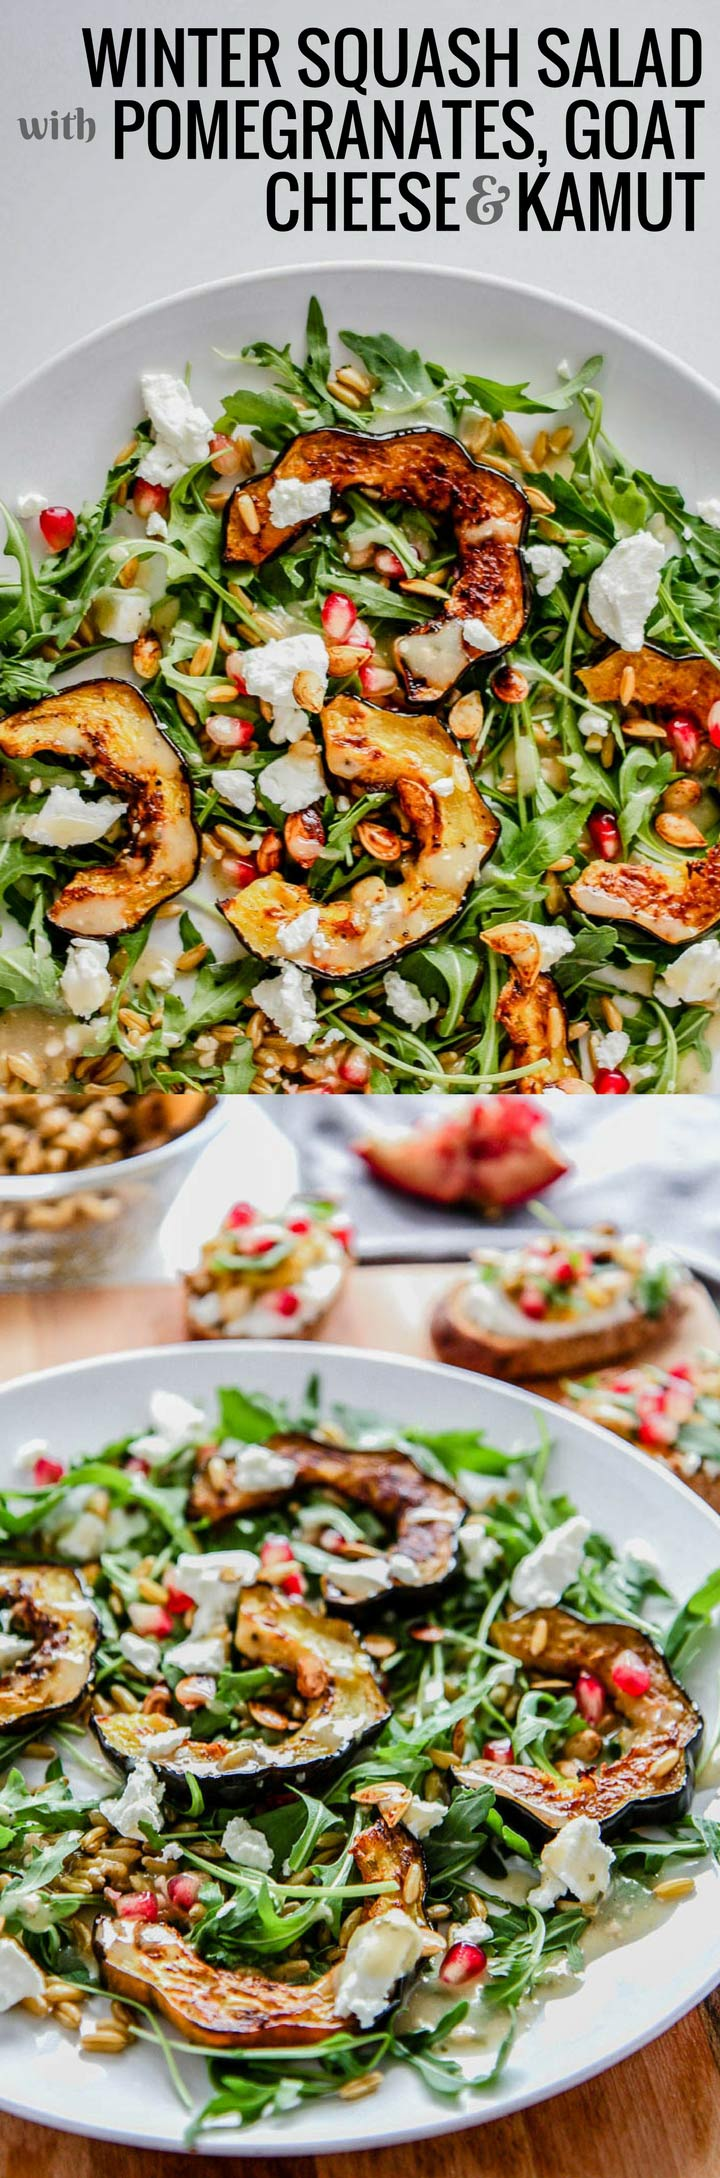 Winter Squash Salad with Pomegranates, Goat Cheese & Kamut, a fresh winter salad with arugula and winter vegetables and fruit. Who said winter produce is boring?